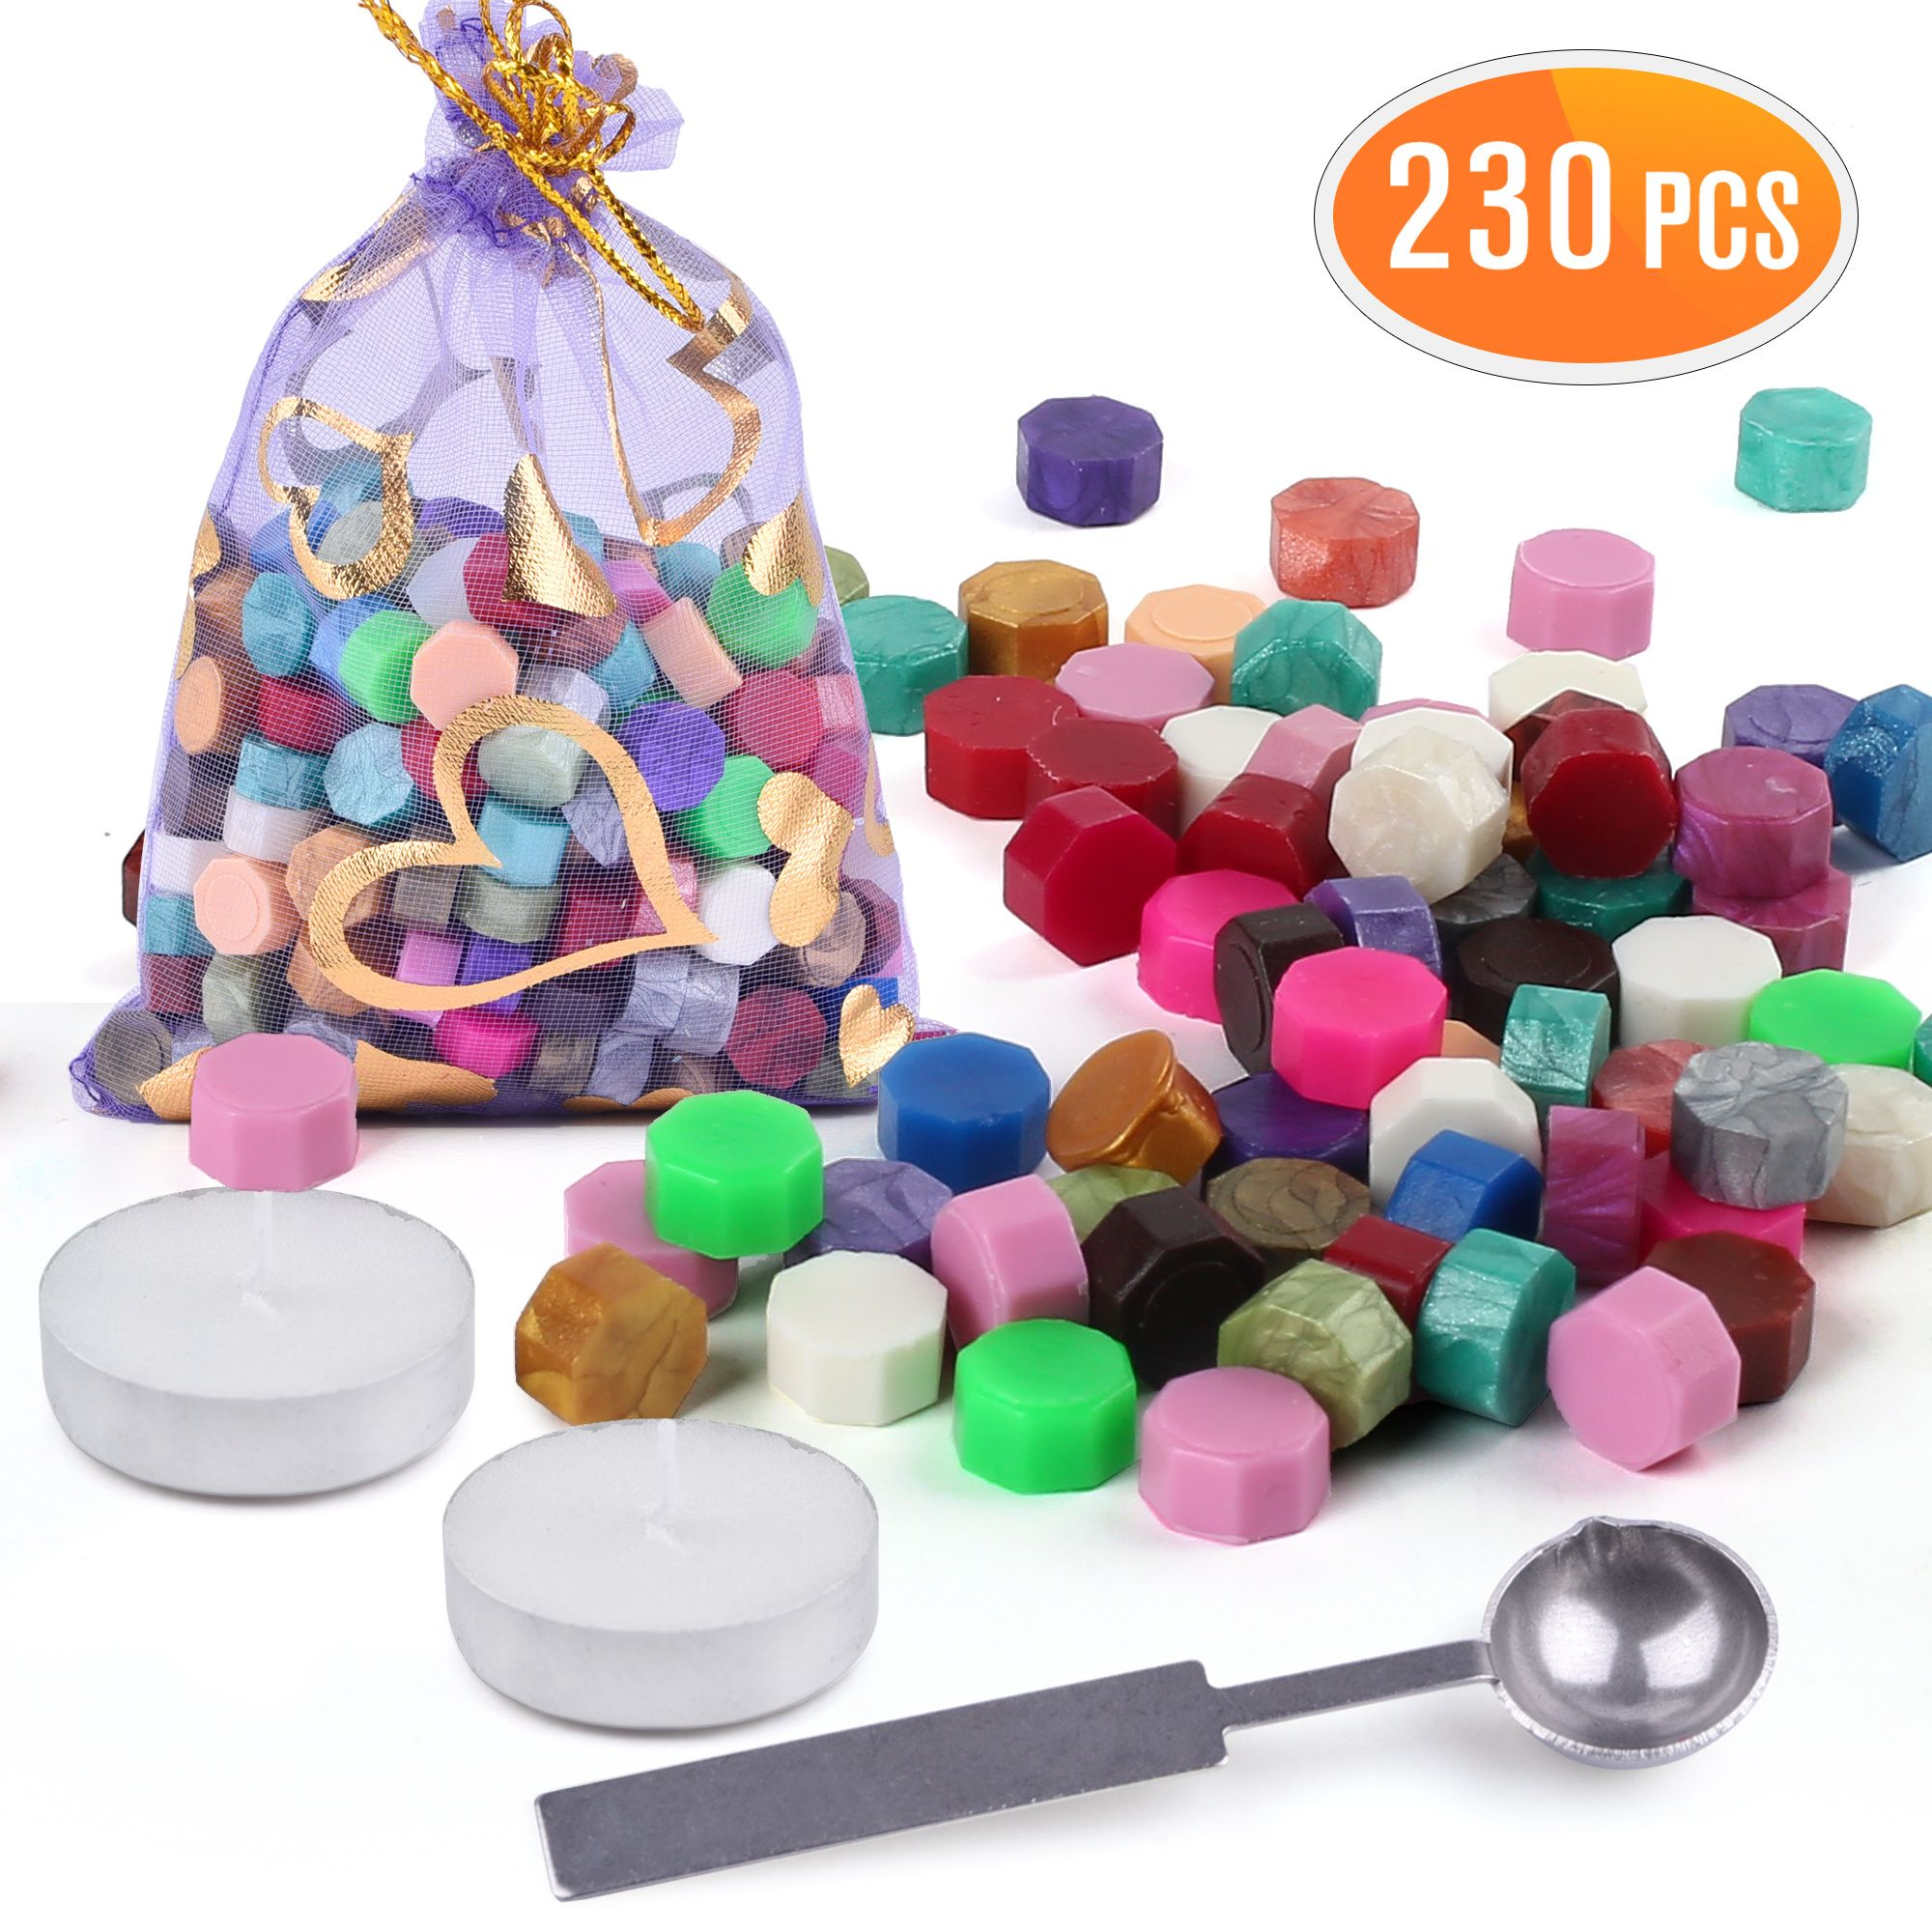 230 Pieces Octagon Wax Seal Beads Stamp Sealing Wax Beads Melting Spoon Kit